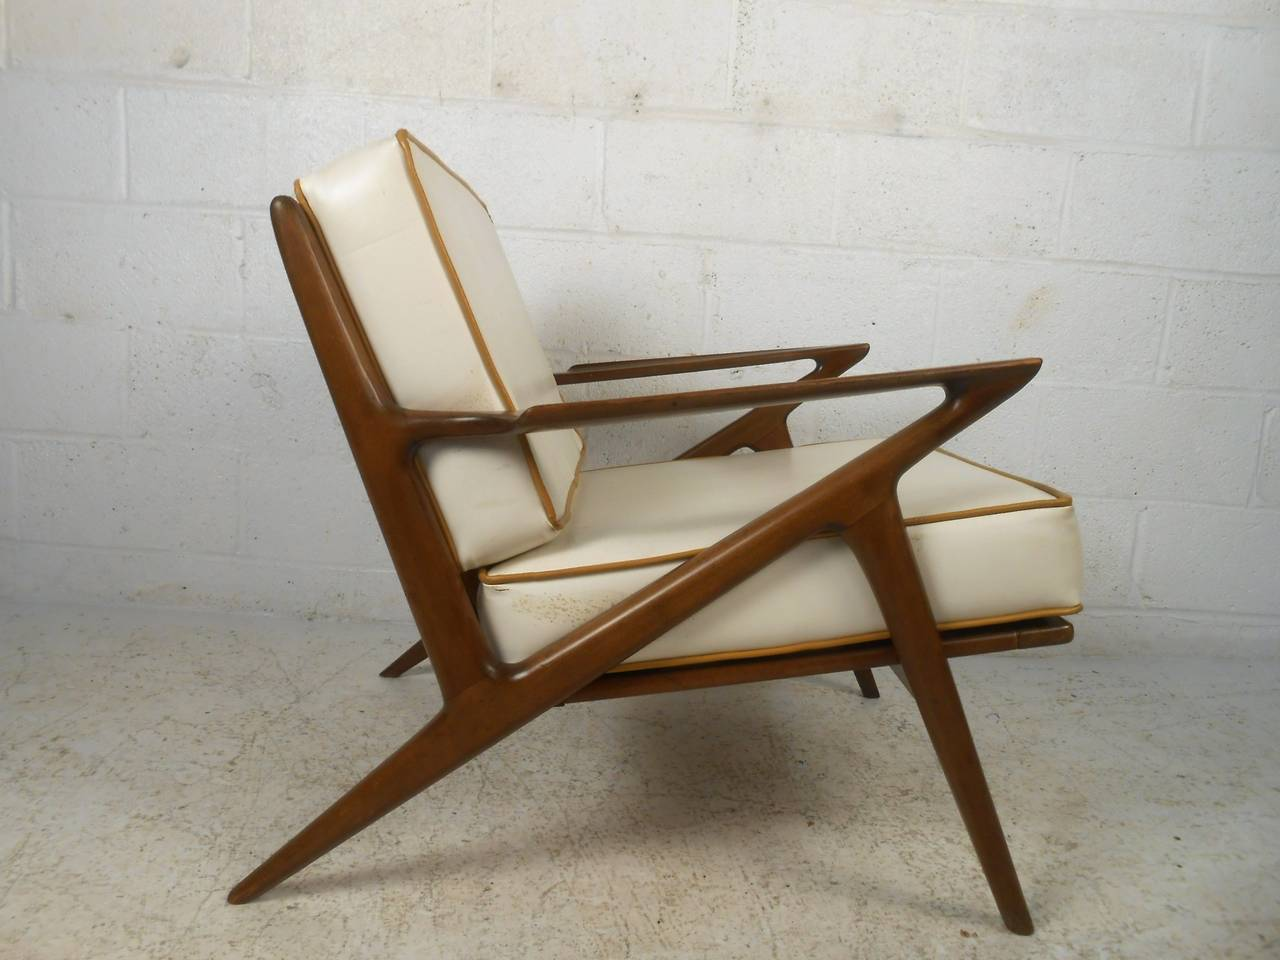 z chair mid century high back accent chairs modern poul jensen style at 1stdibs in good condition for sale brooklyn